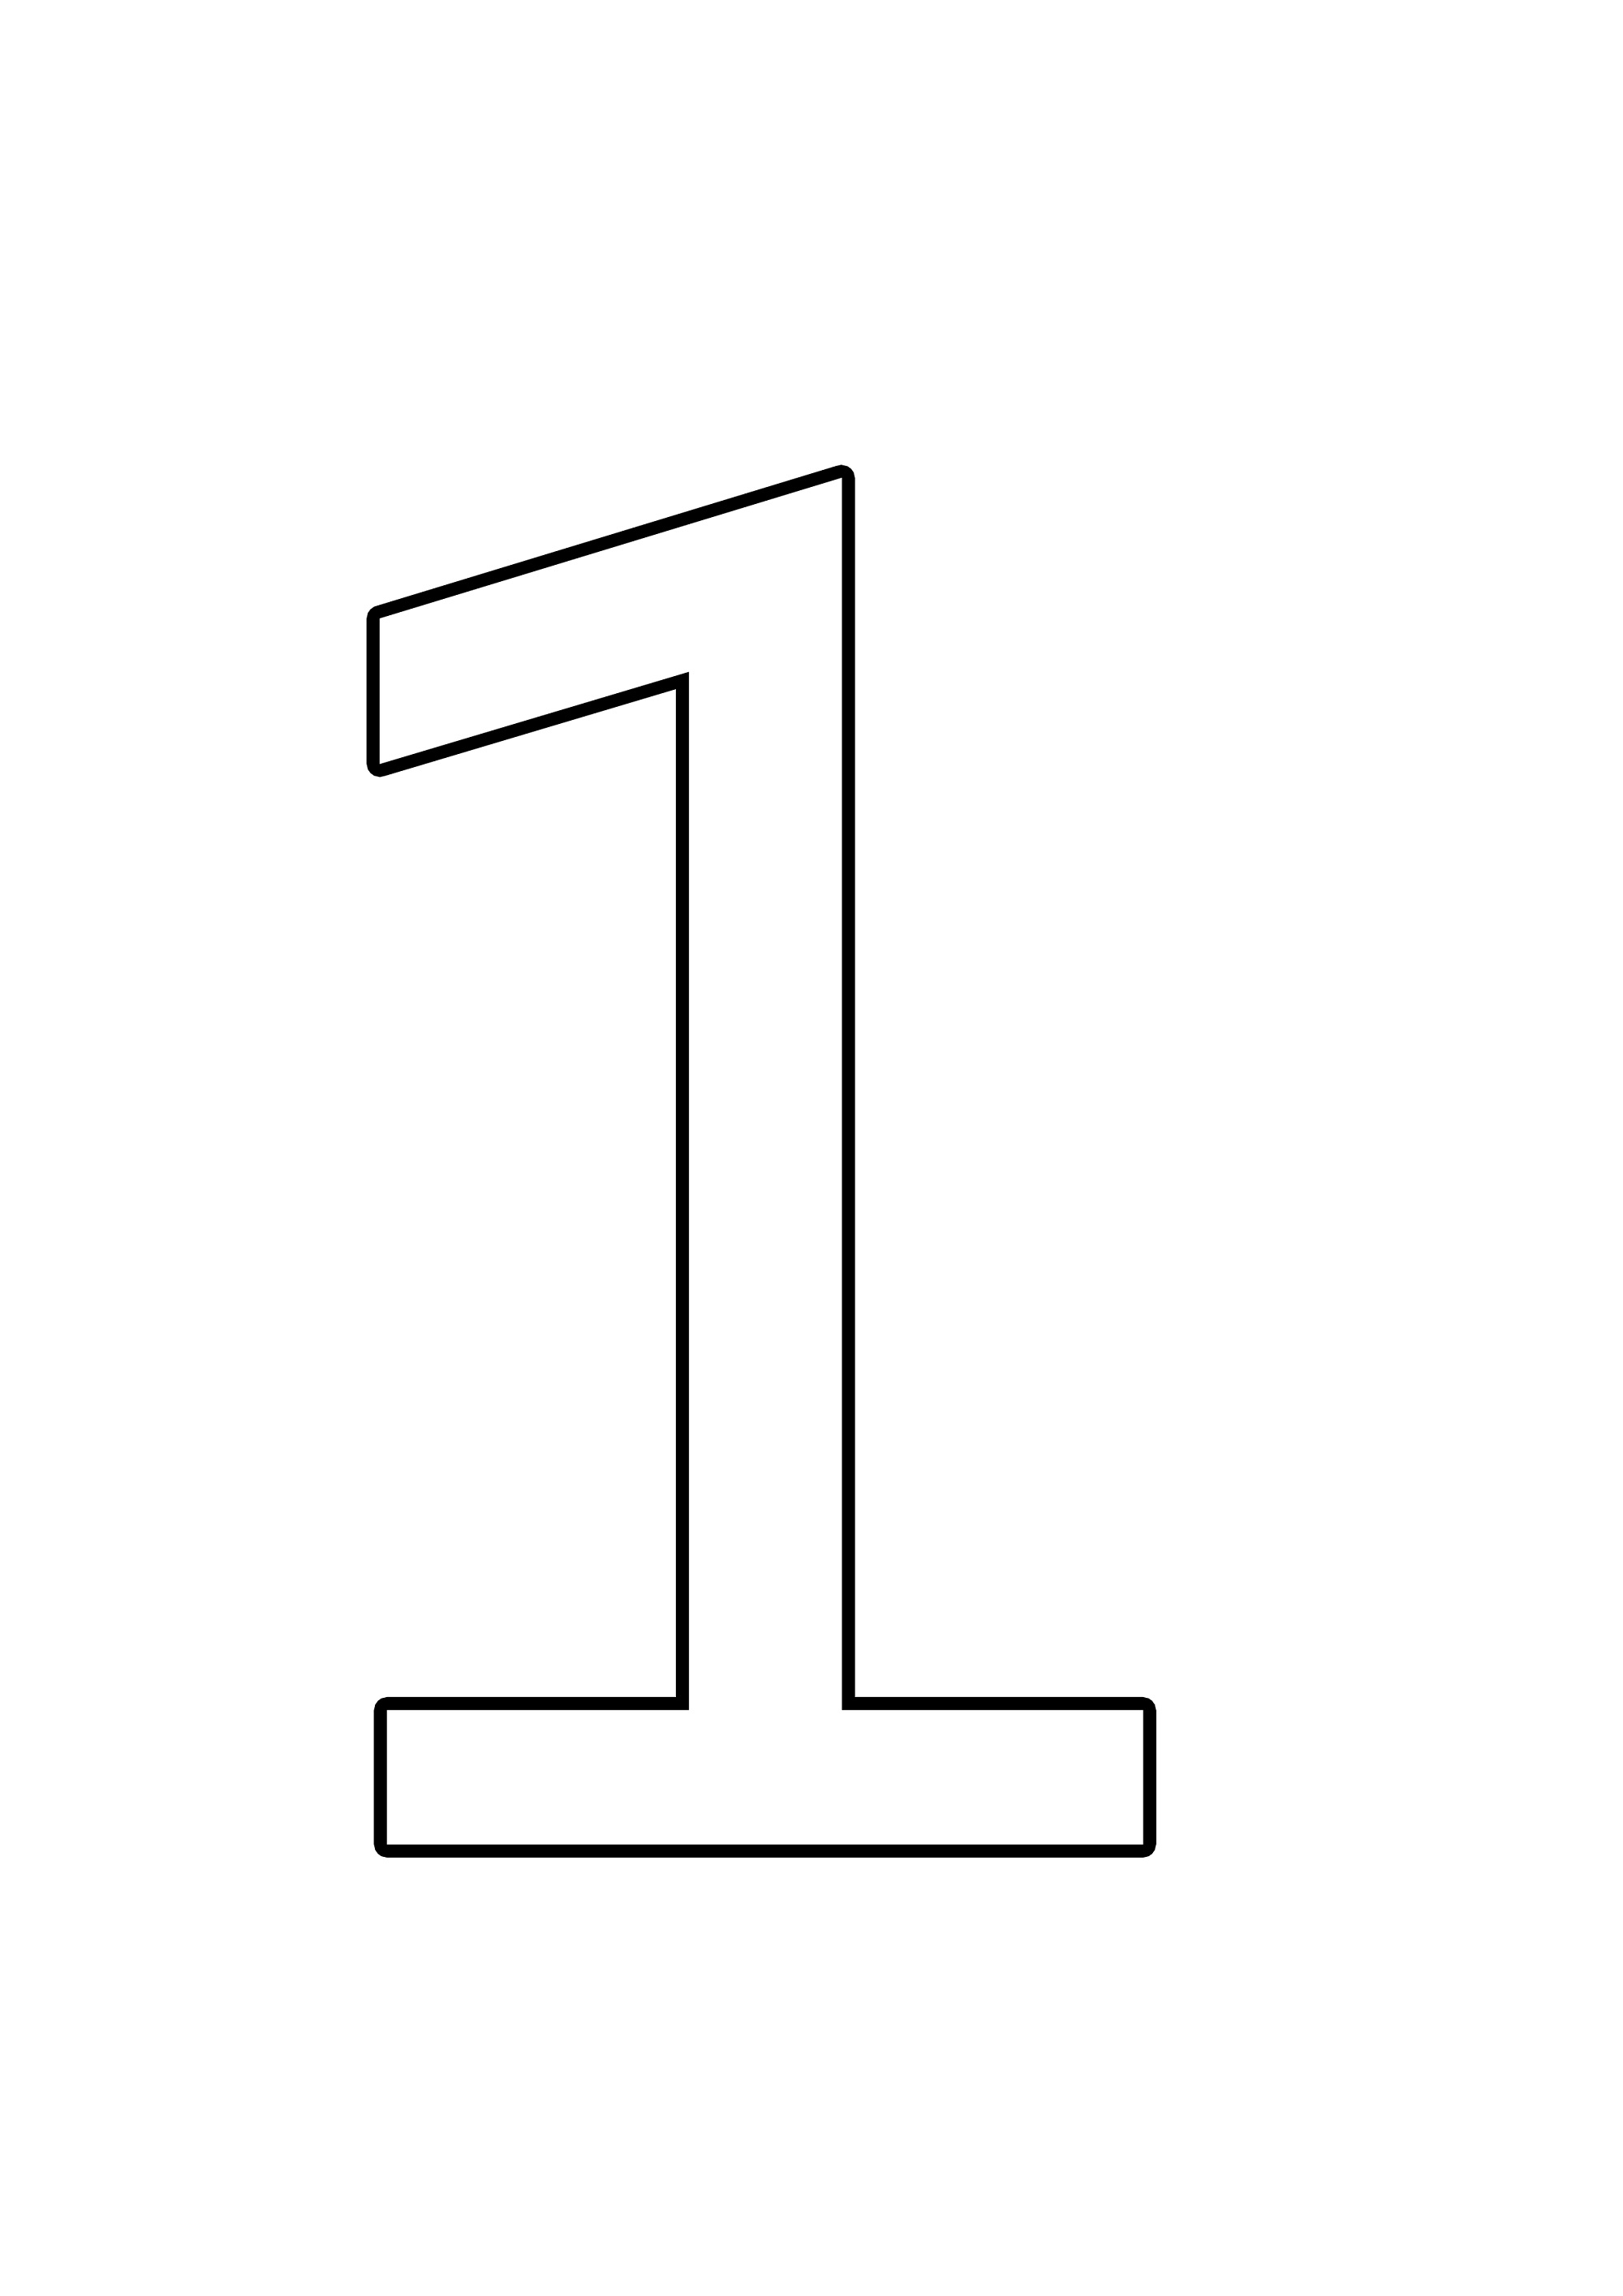 picture of the number 1 printable